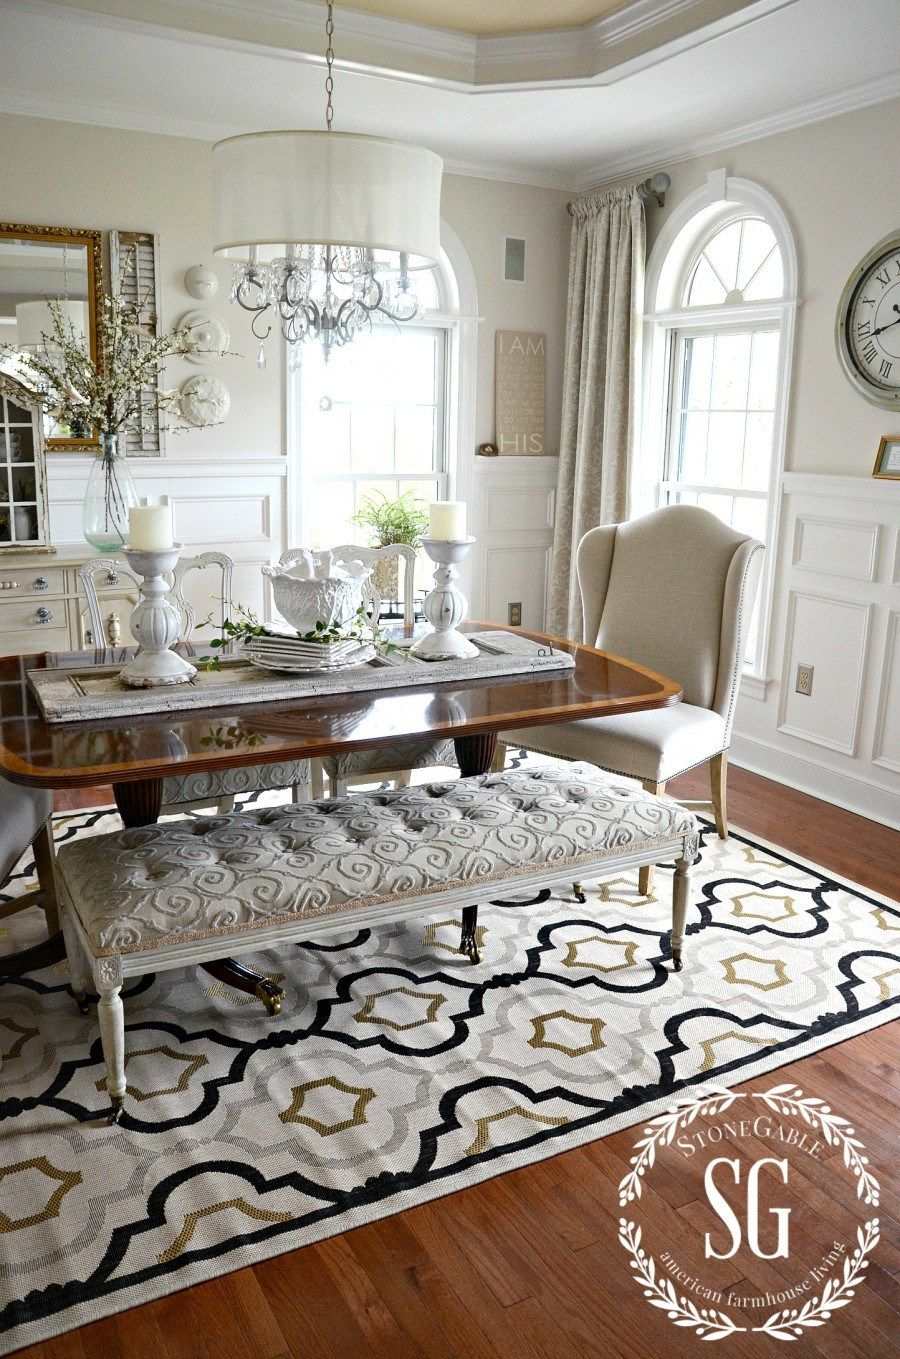 5 rules for choosing the perfect dining room rug room - Dining room area rugs ideas ...